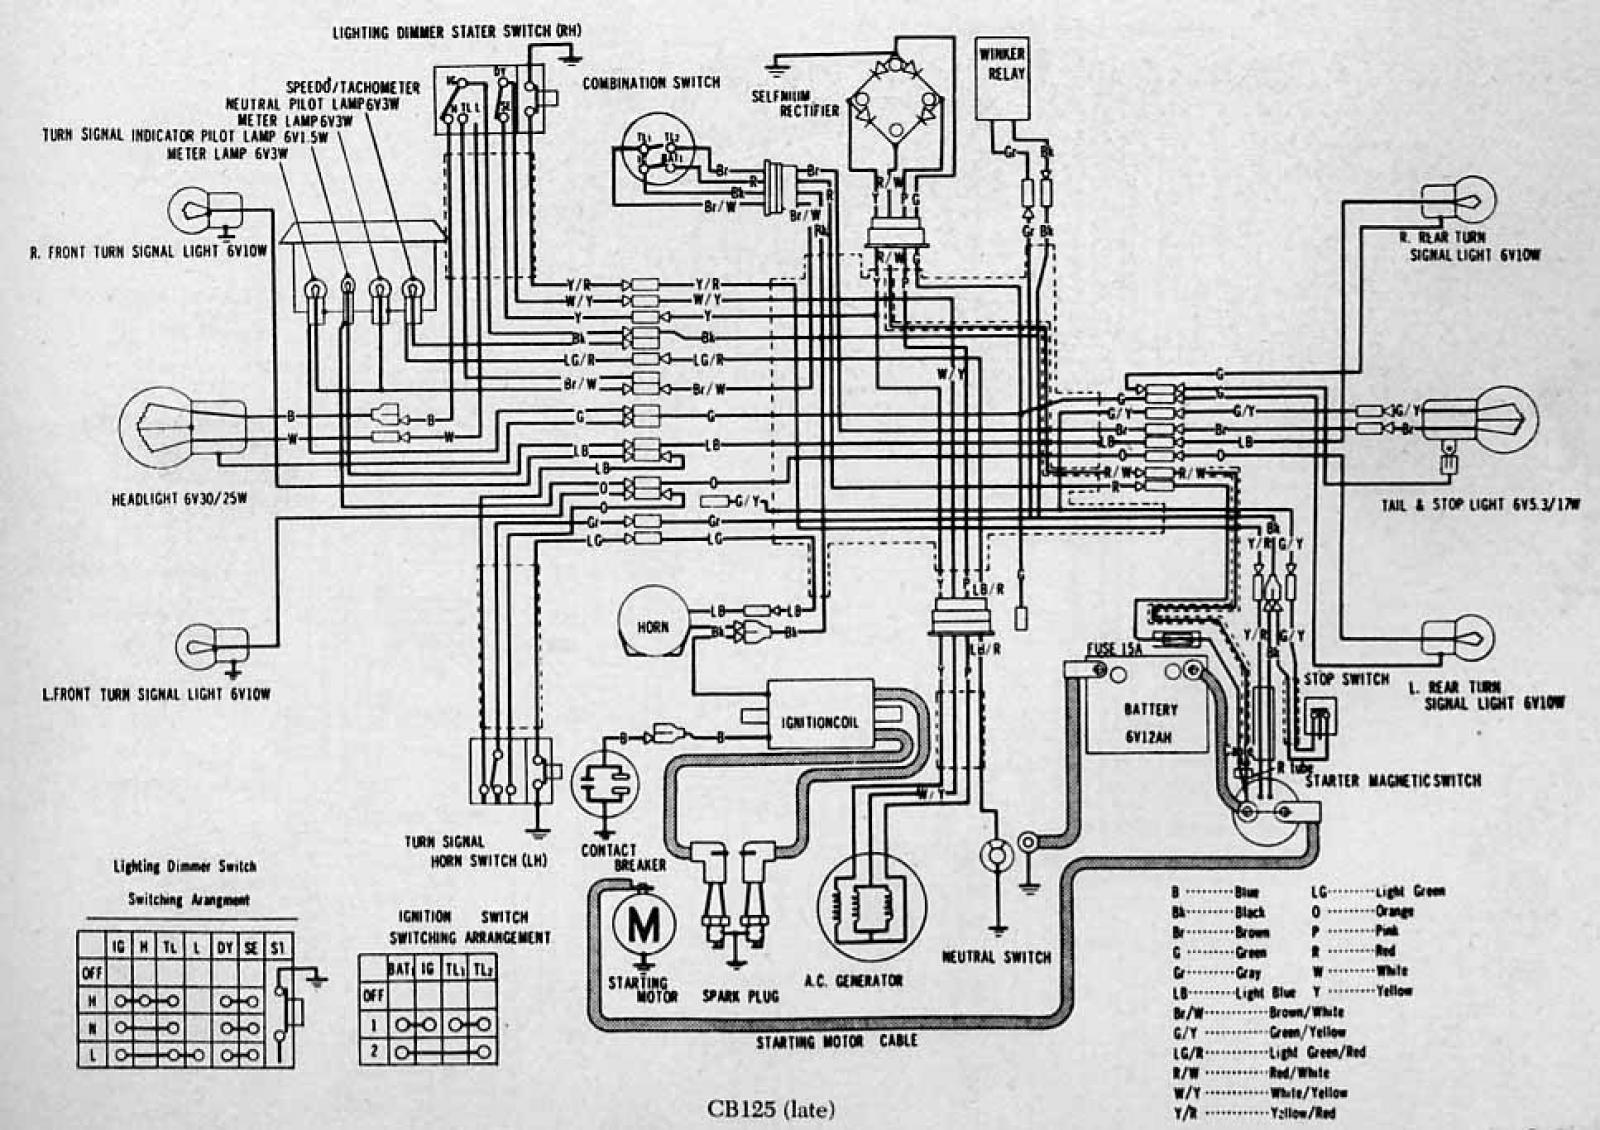 Famous Vf750f Wiring Diagram Ideas - Electrical Circuit Diagram ...